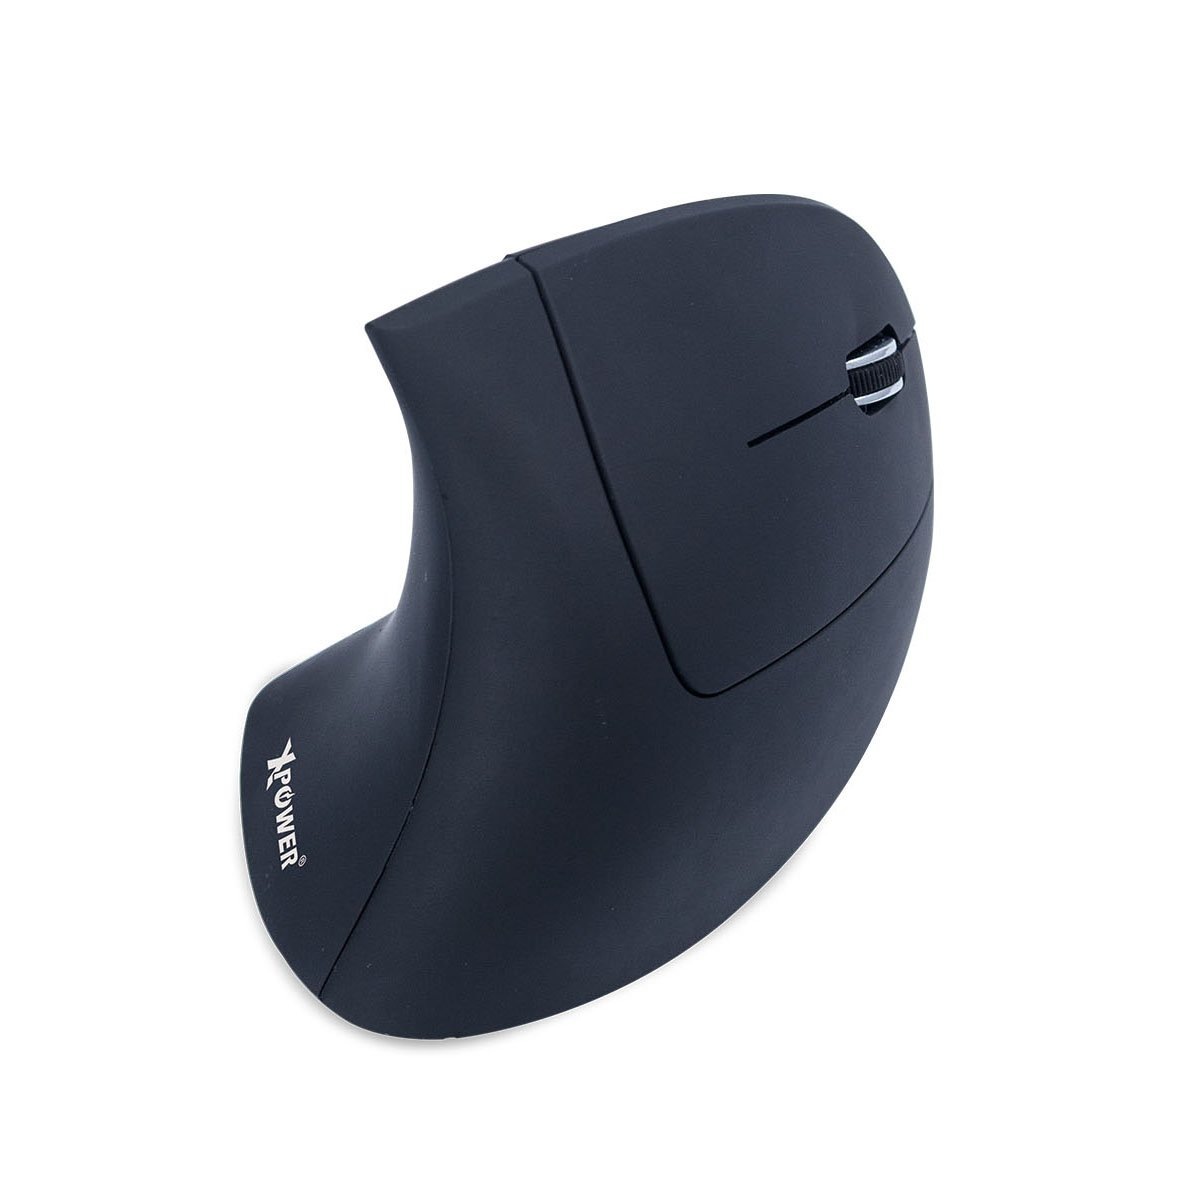 Xpower WM1 Ergonomic Wireless Vertical Mouse